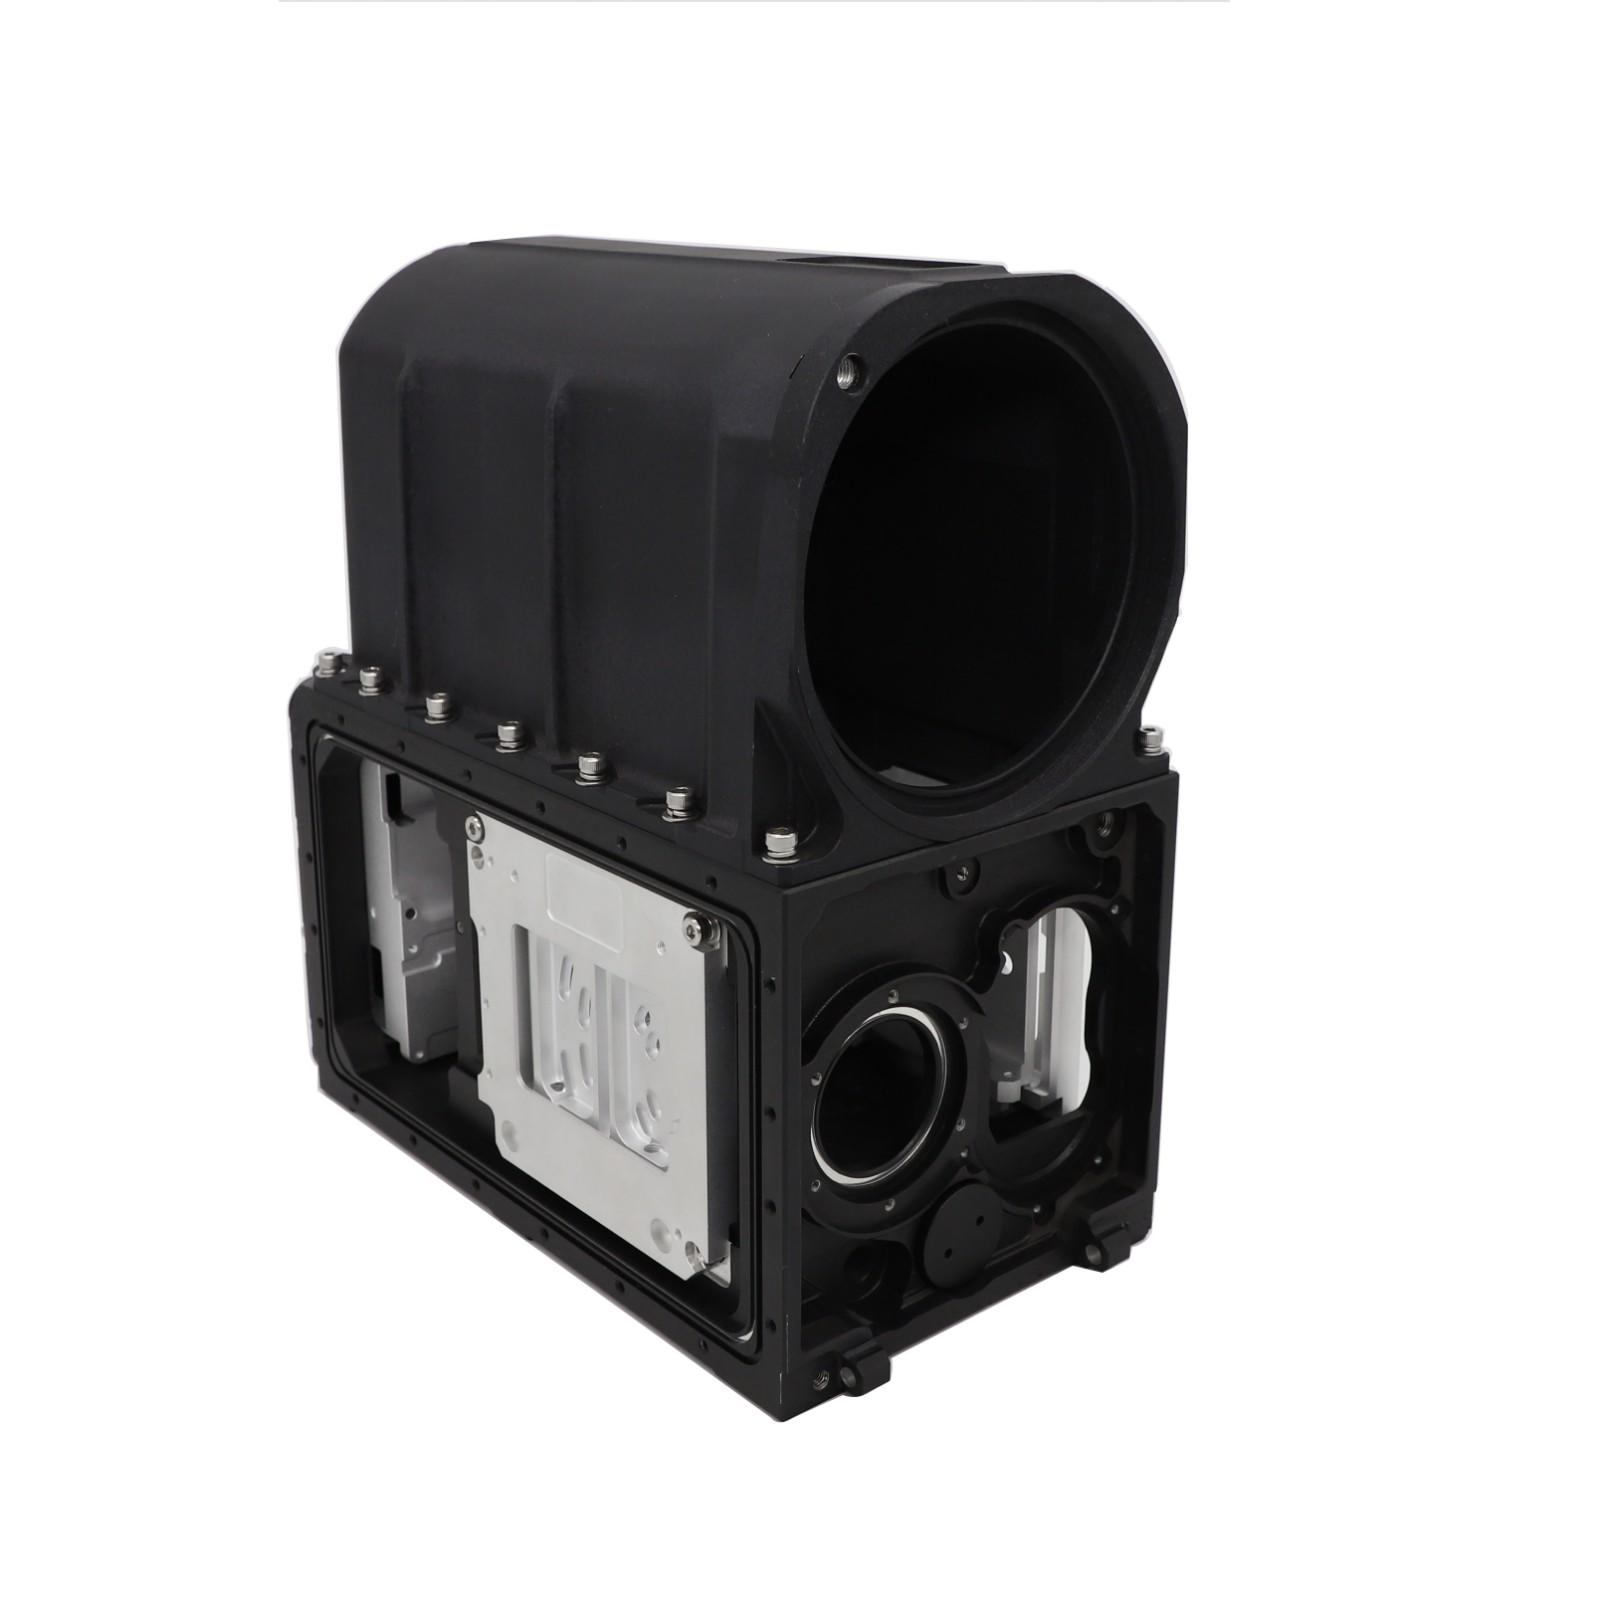 Xavier housing parts investment casting products factory direct price for ccd camera-2